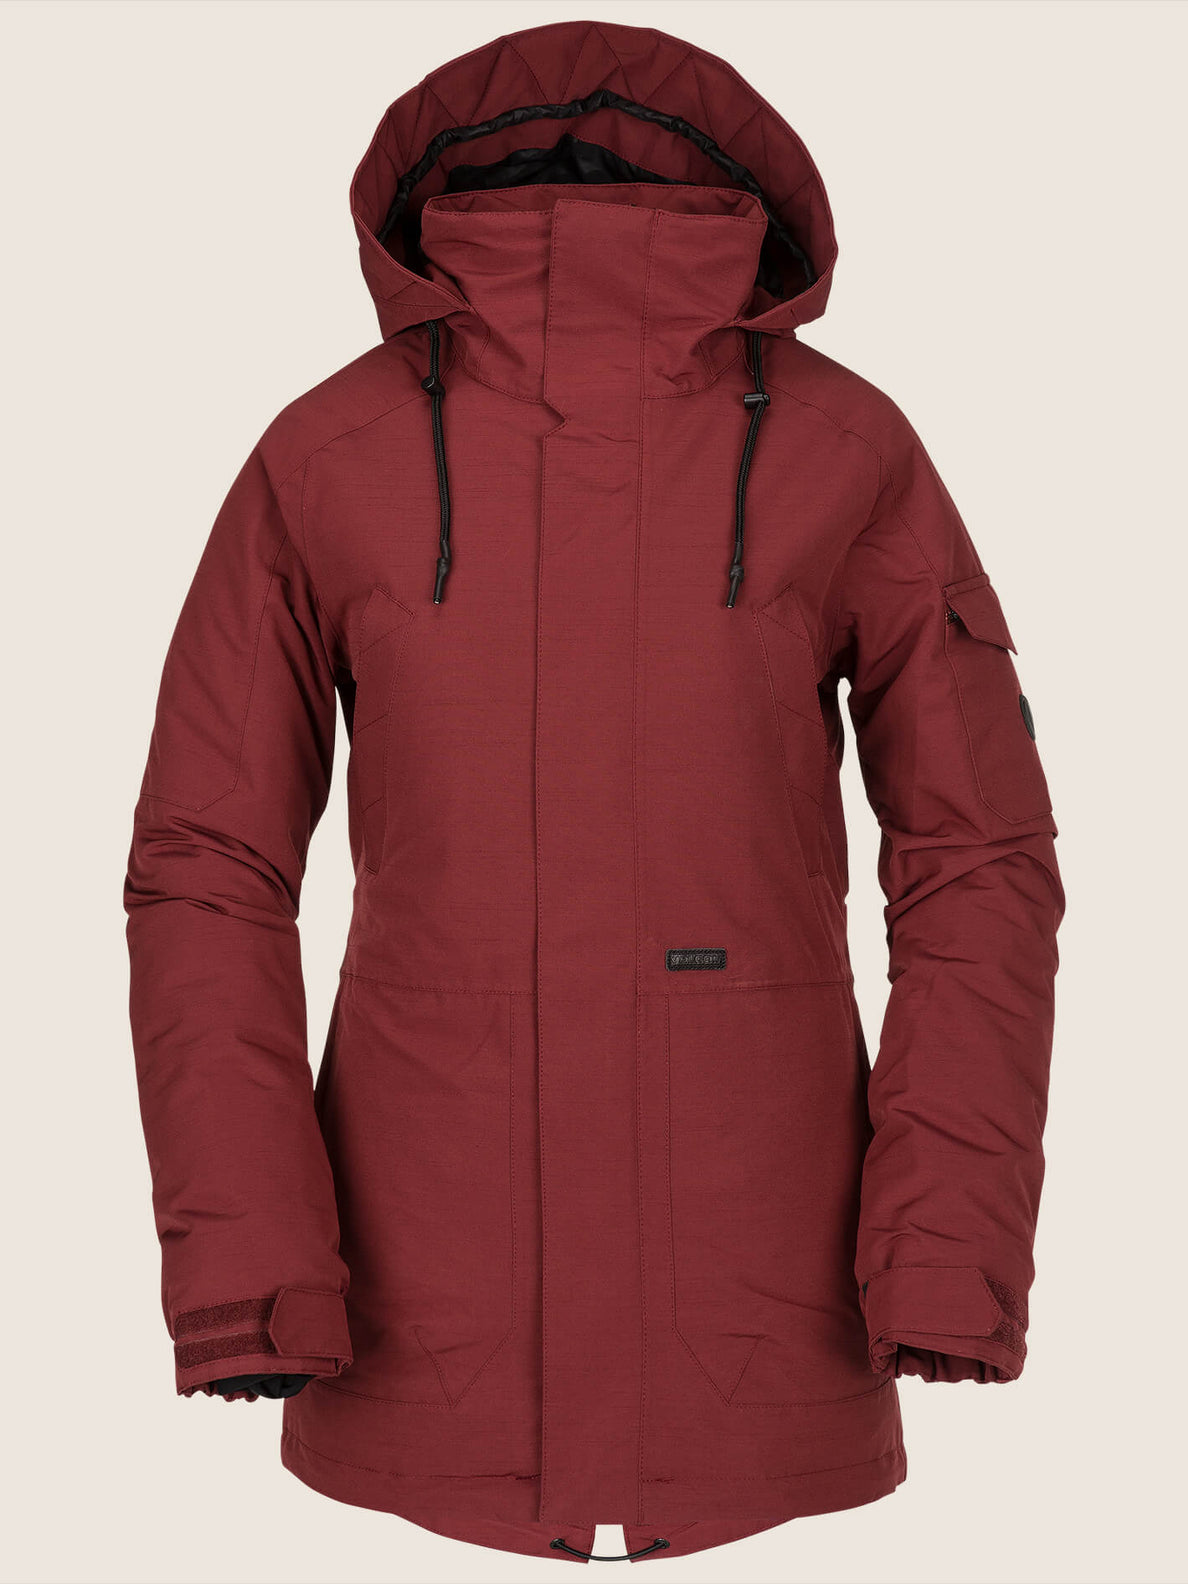 Shrine Insulated Jacket In Burnt Red, Front View